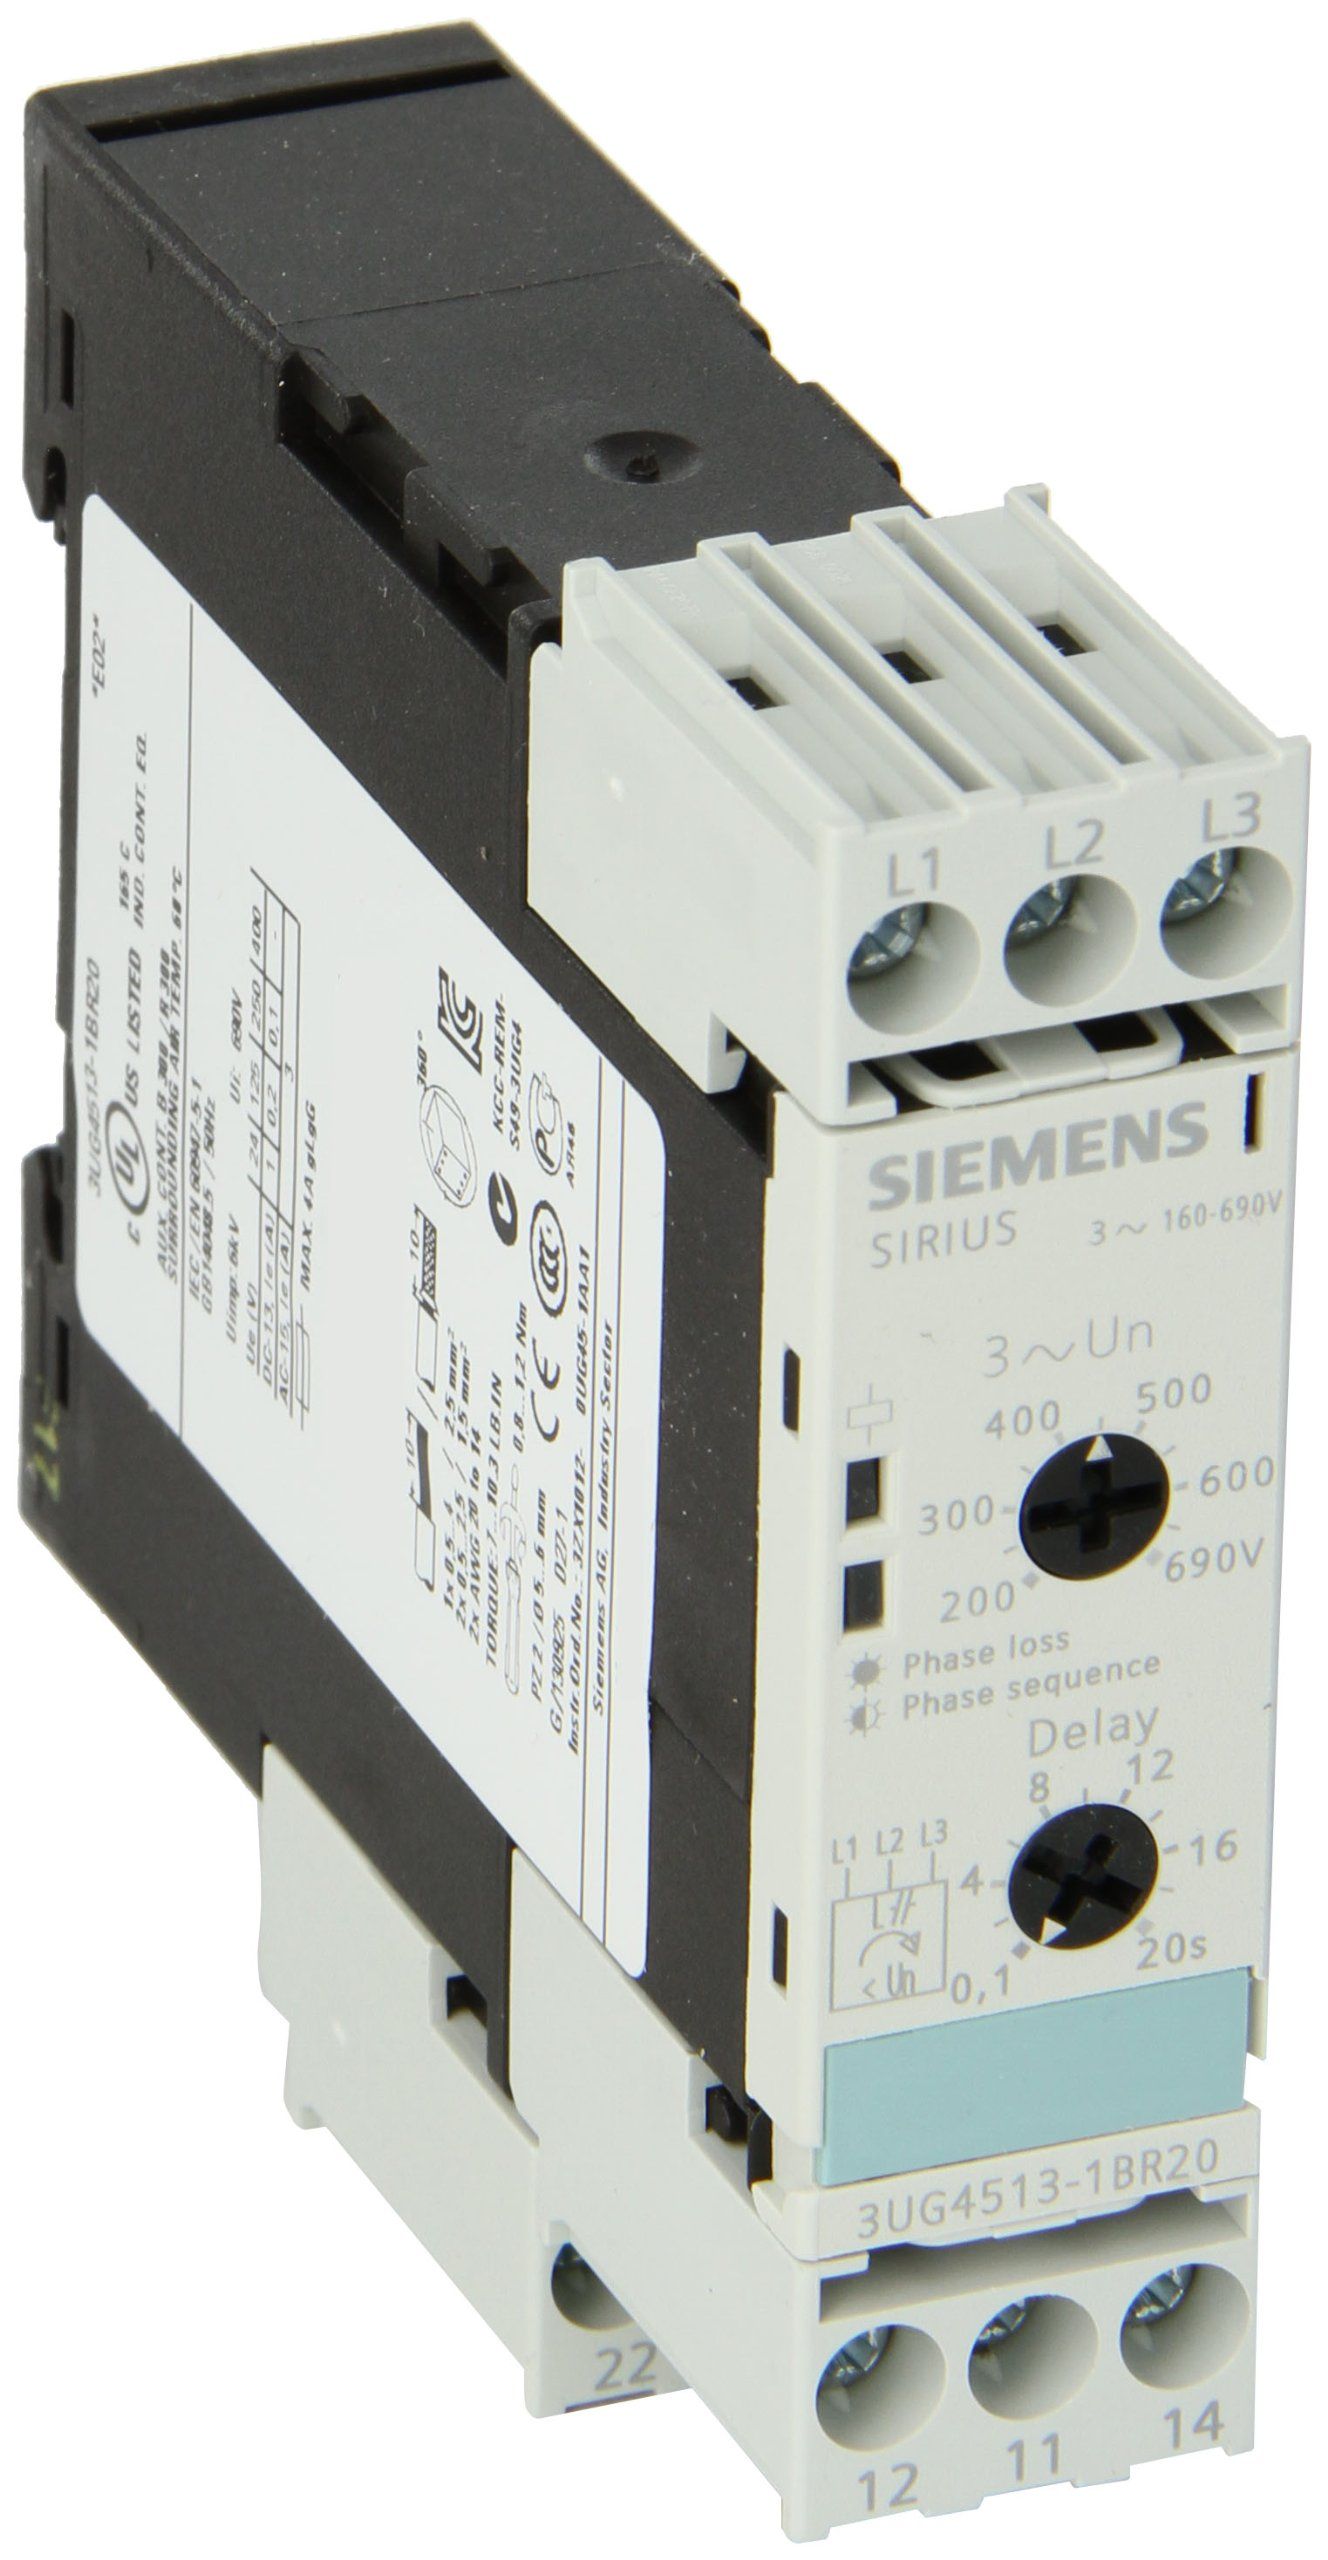 Siemens 3UG4513-1BR20 Monitoring Relay, Three Phase Voltage, Insulation Monitoring, 22.5mm Width, Screw Terminal, 2 CO Contacts, Off Delay 0-20s Delay Time, 160-690 Line Supply Voltage by SIEMENS